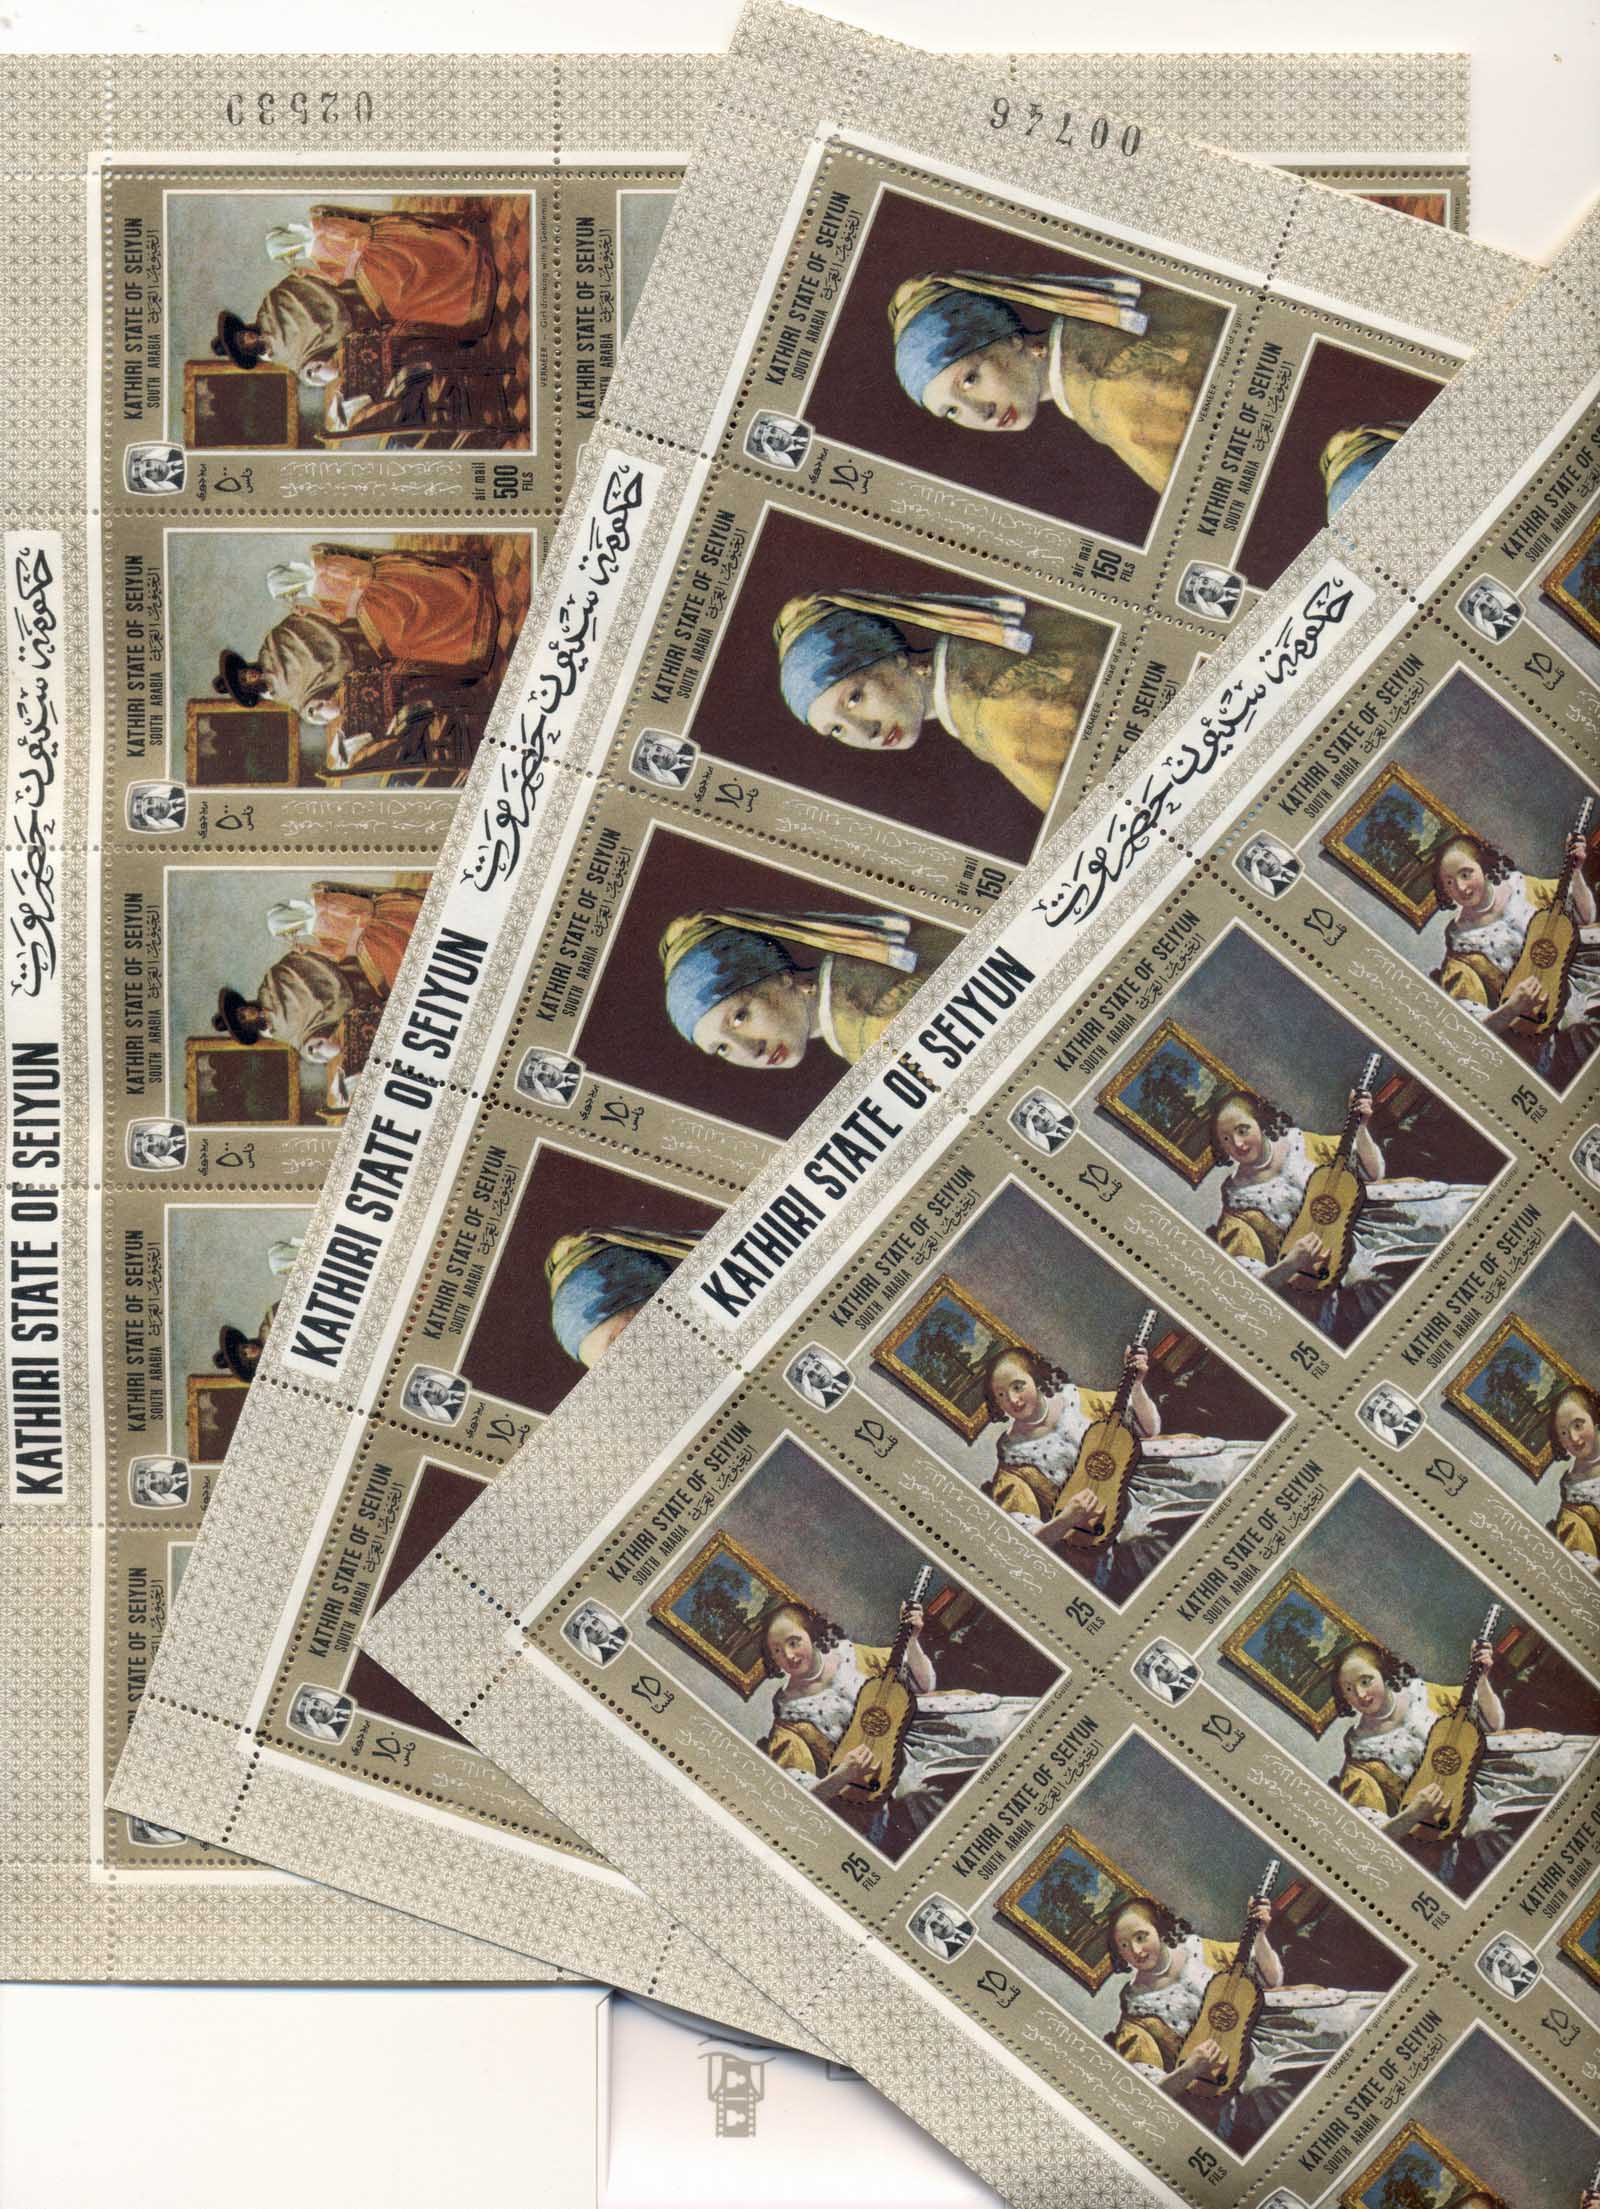 Aden Kathiri State of Seiyun 1967 Mi#160-162 Paintings by Jan Vermeer van Delft 3x sheets (folded) MUH